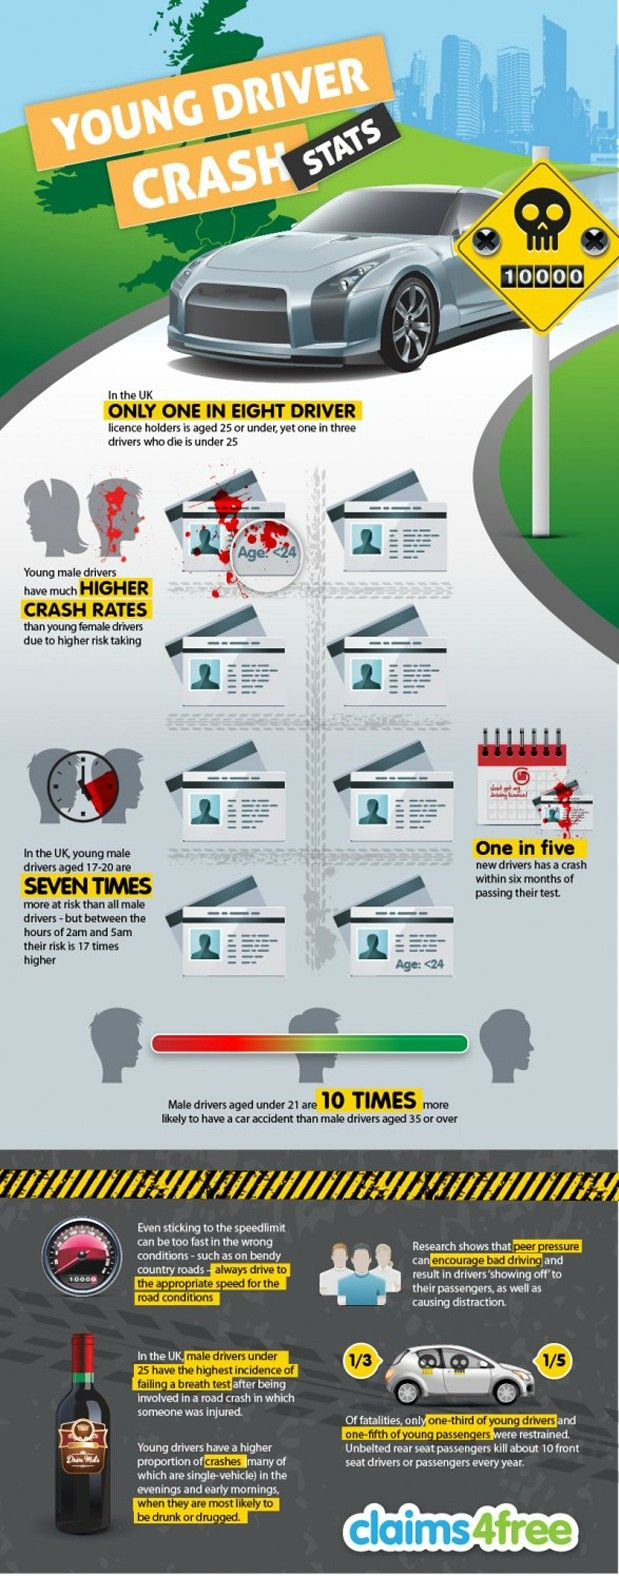 Safest car color accidents - Young Car Driver Crash Rates Infographic We Will Have A Young Driver Next Month